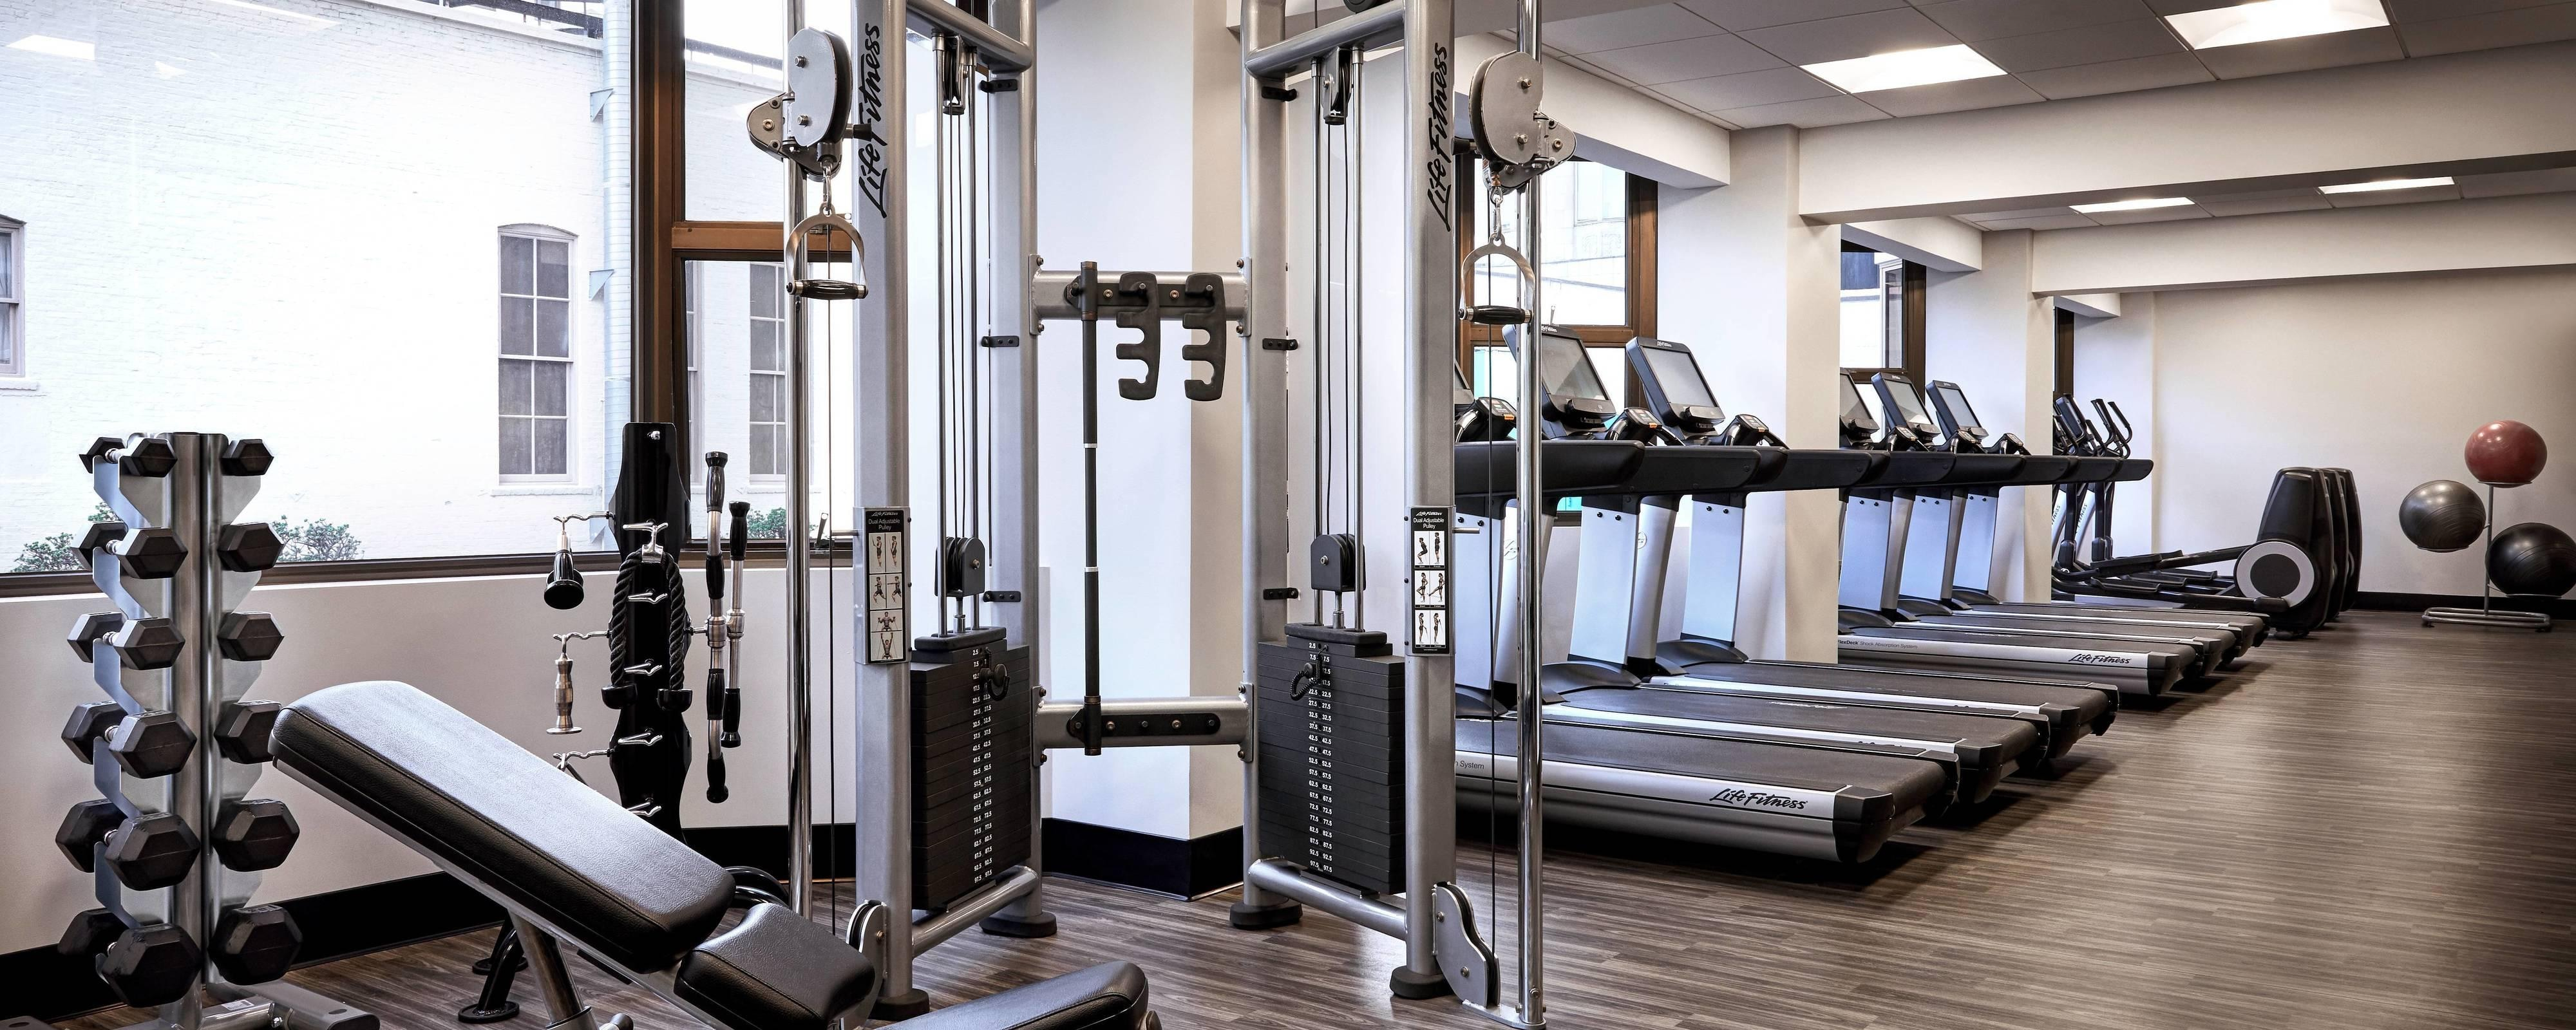 San francisco union square hotel with gym san francisco marriott